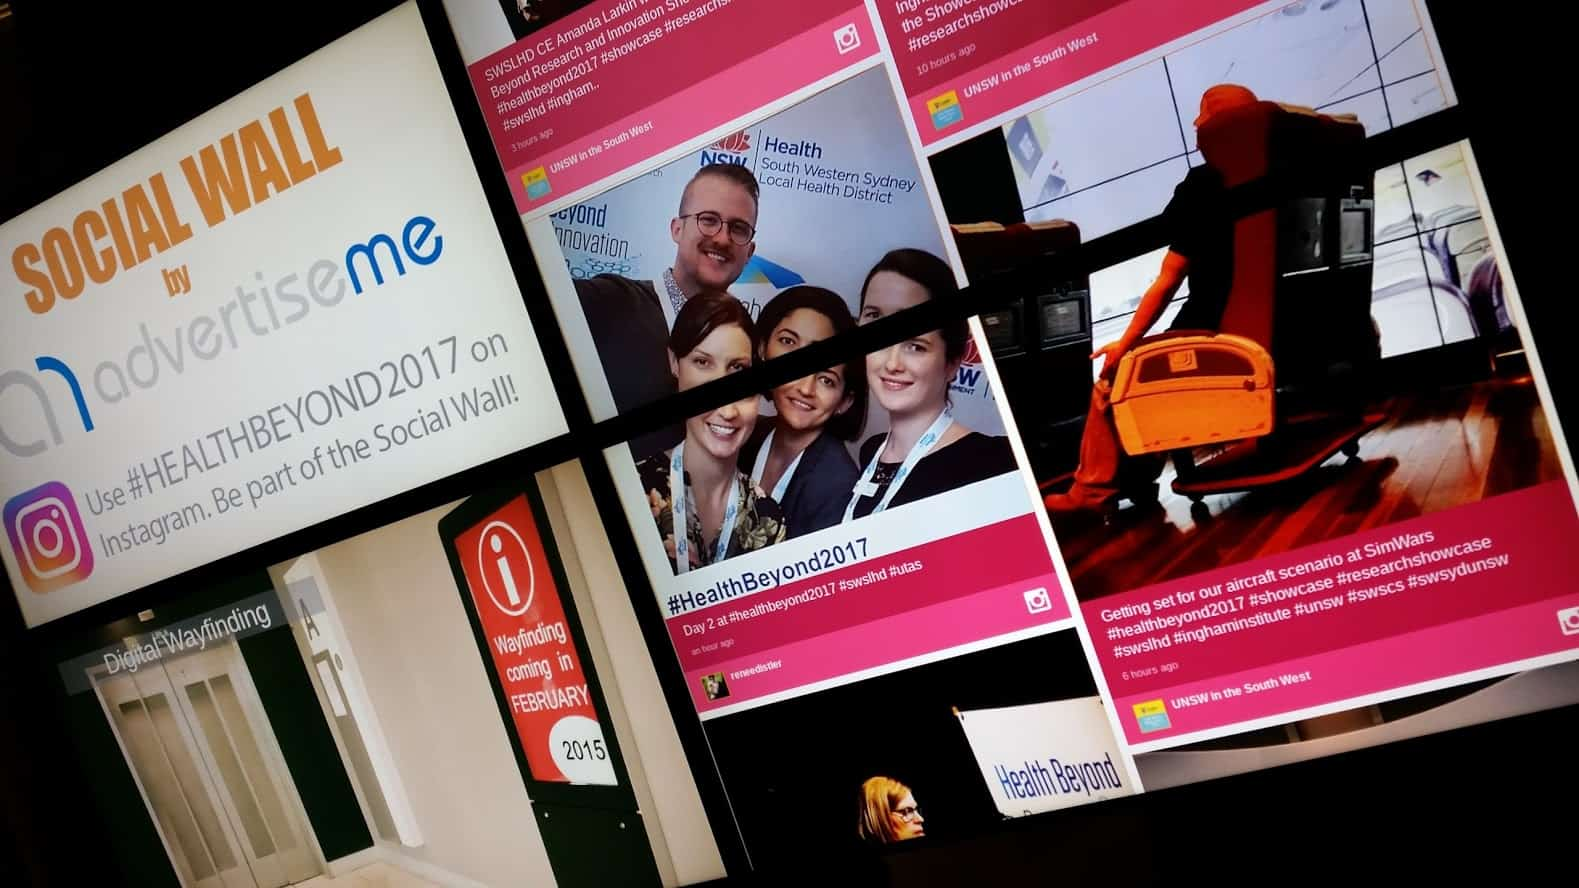 Video Wall & Social Wall – Ingham Institute Health and Beyond